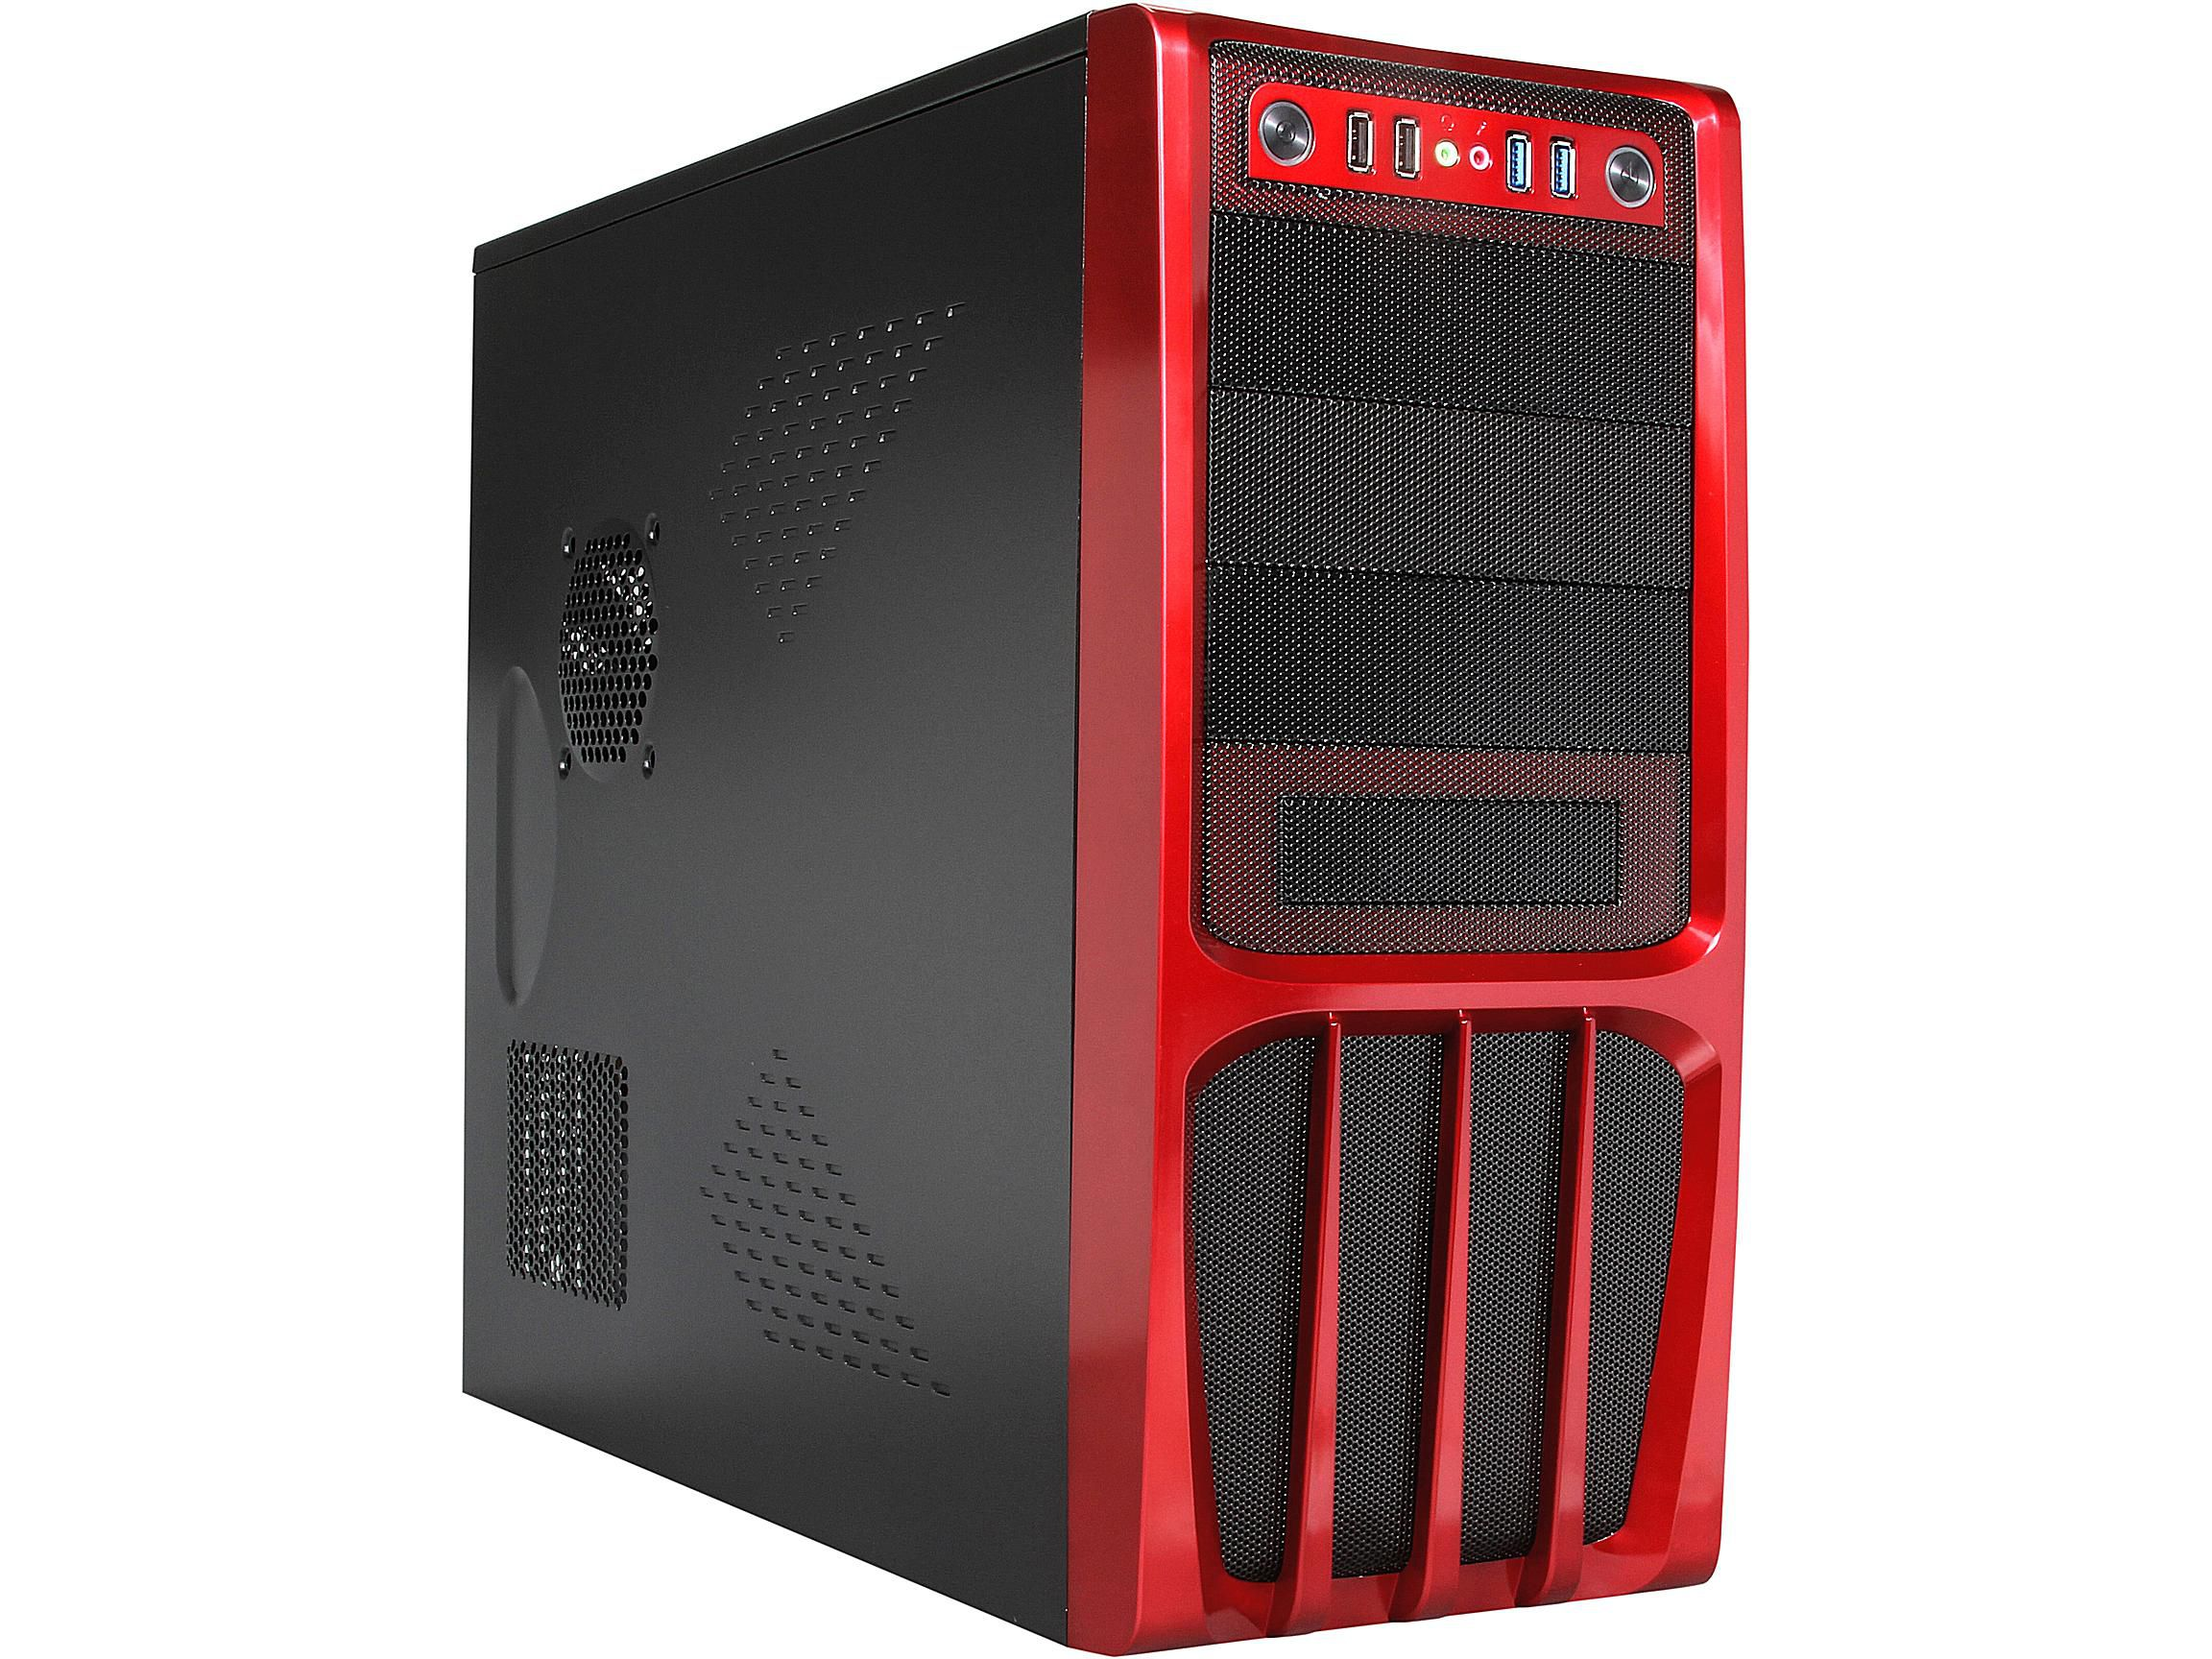 DIY: Budget Gaming PC Guide and Parts List